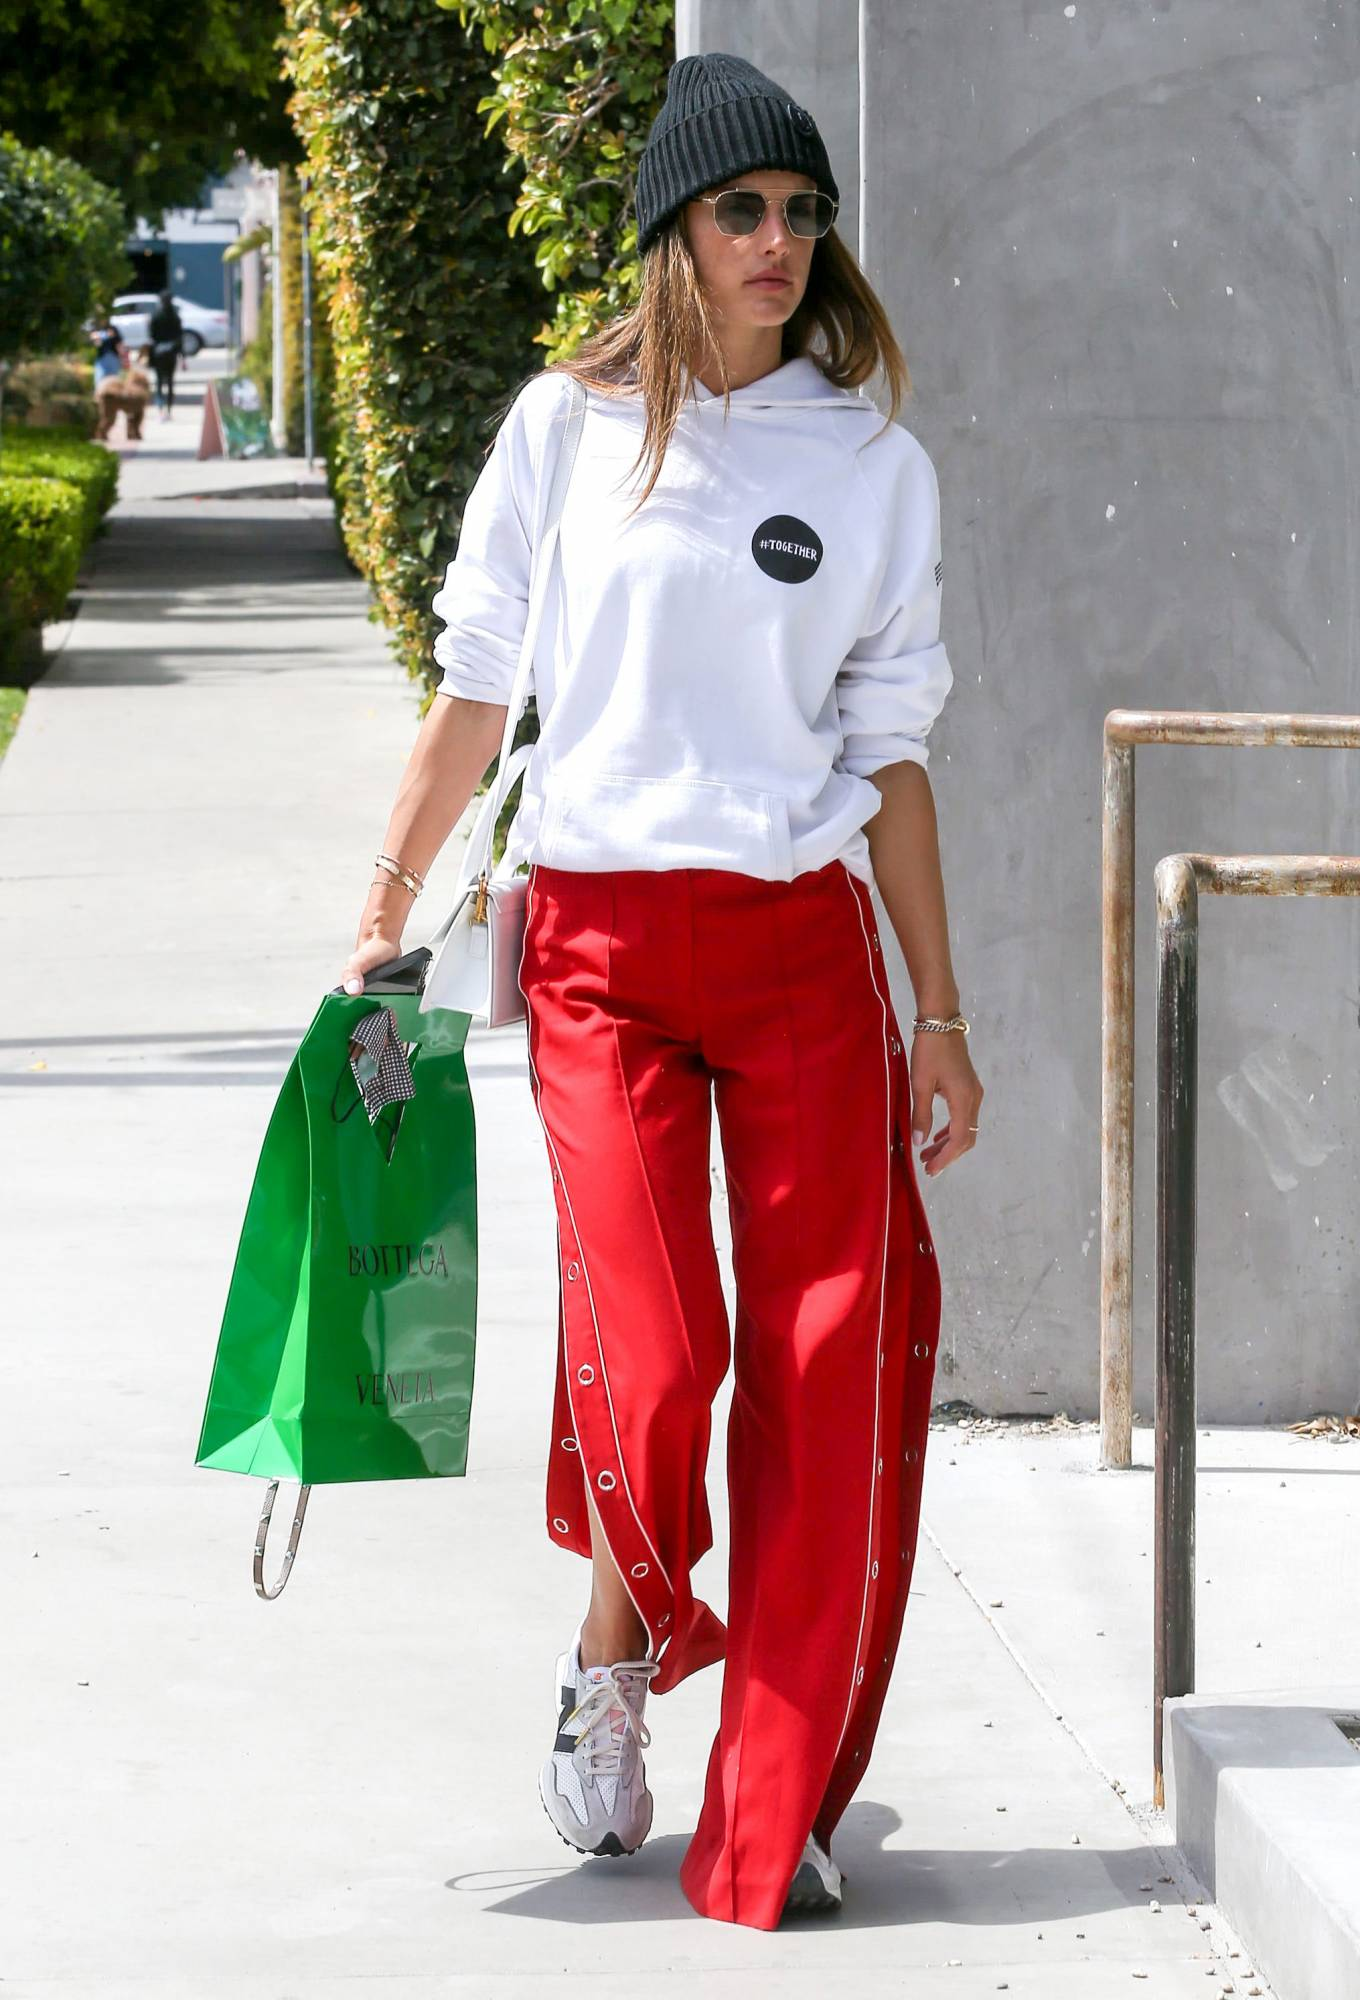 Alessandra Ambrosio wearing brand logo white and black lace-up sneakers by New Balance with flat heel